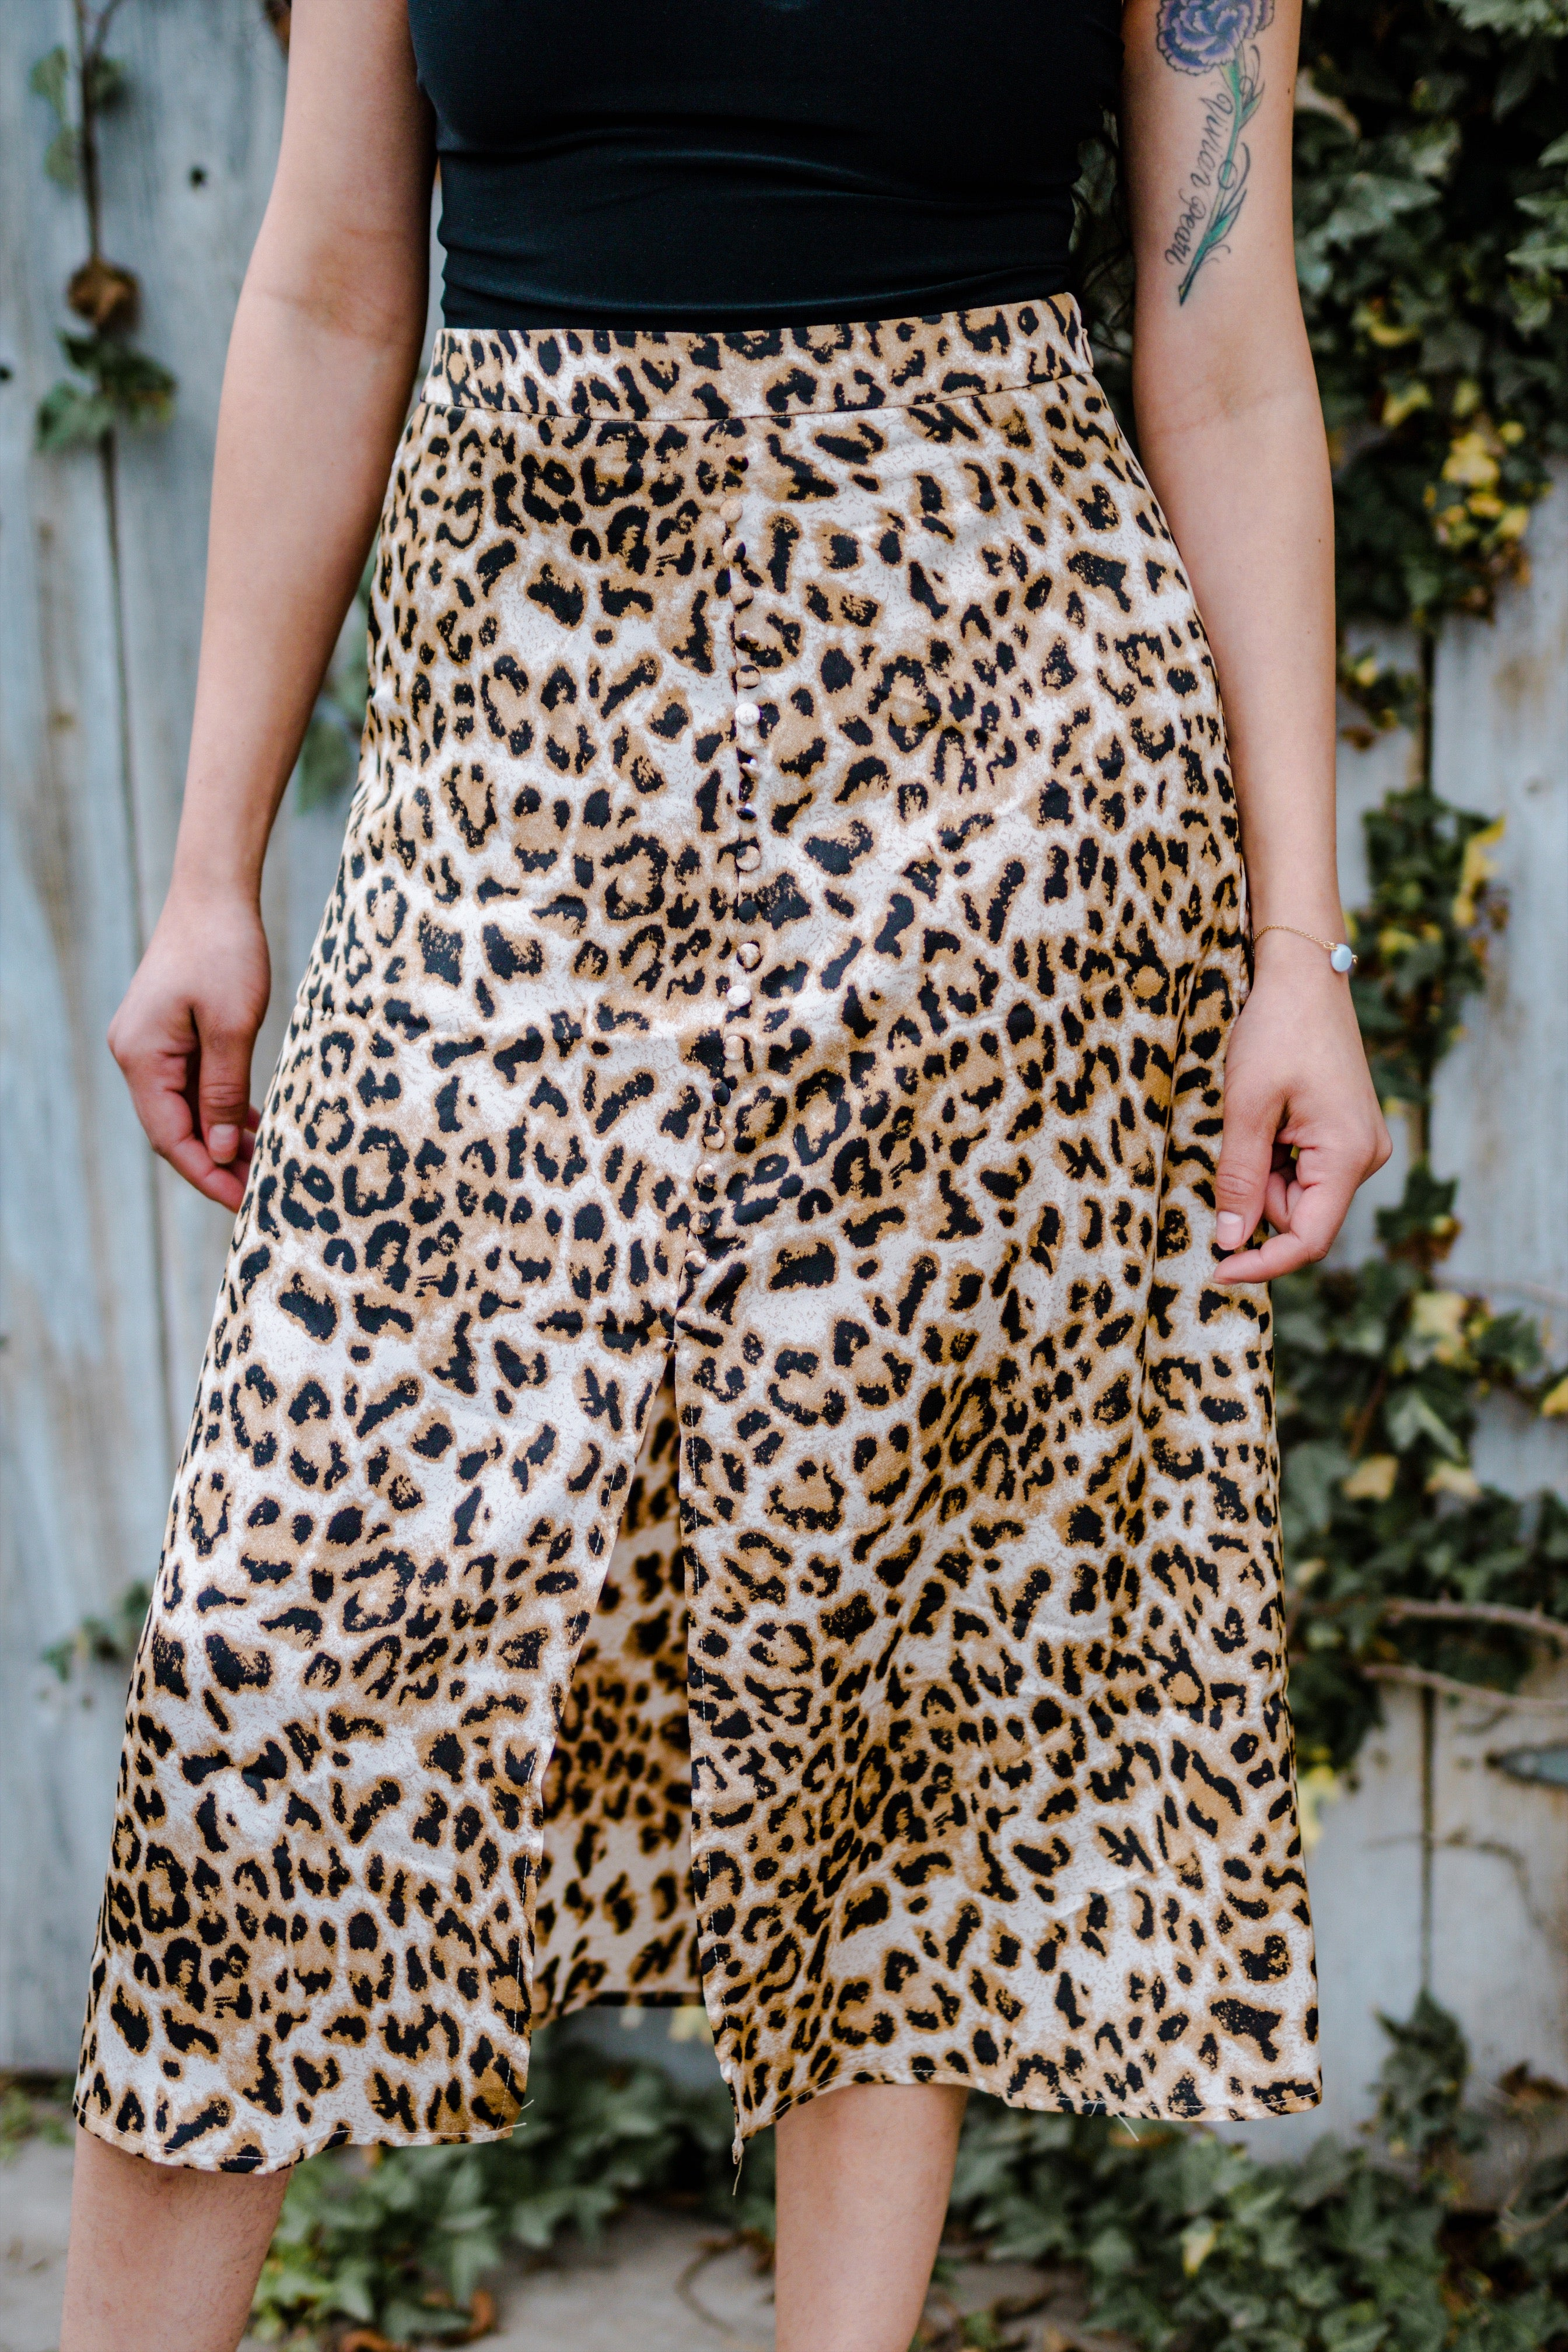 Leopard Print Skirt With Slit